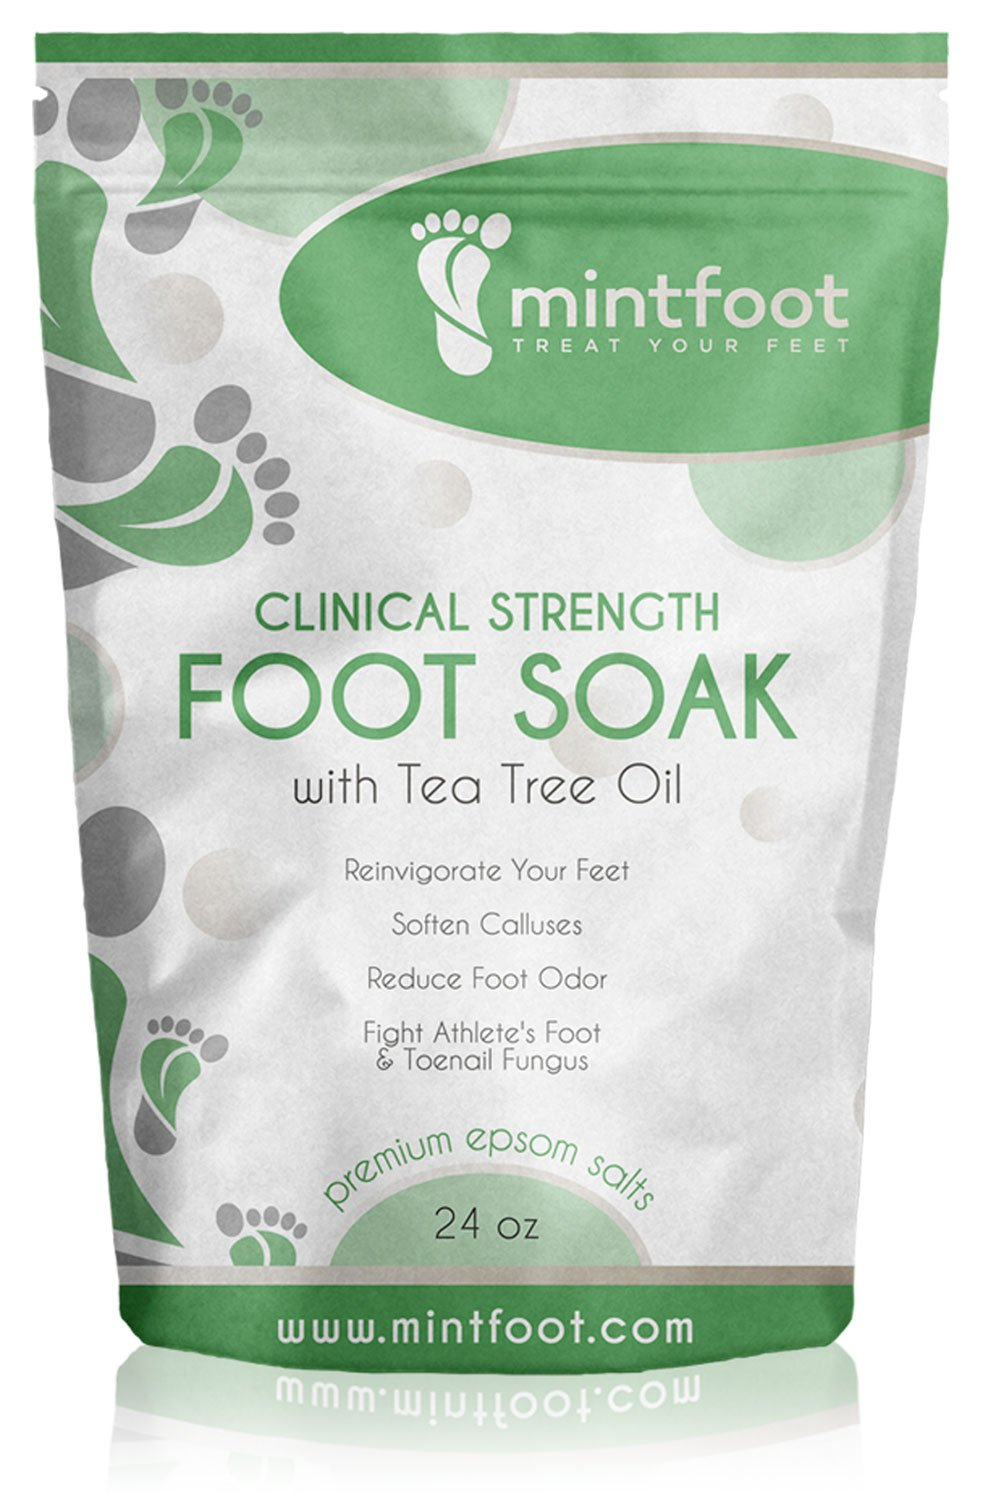 Mintfoot 24oz Clinical Strength Foot Soak with Tea Tree Oil & Epsom Salts - Fights Athlete's Foot & Toenail Fungus - Reinvigorate Your Feet by Mintfoot